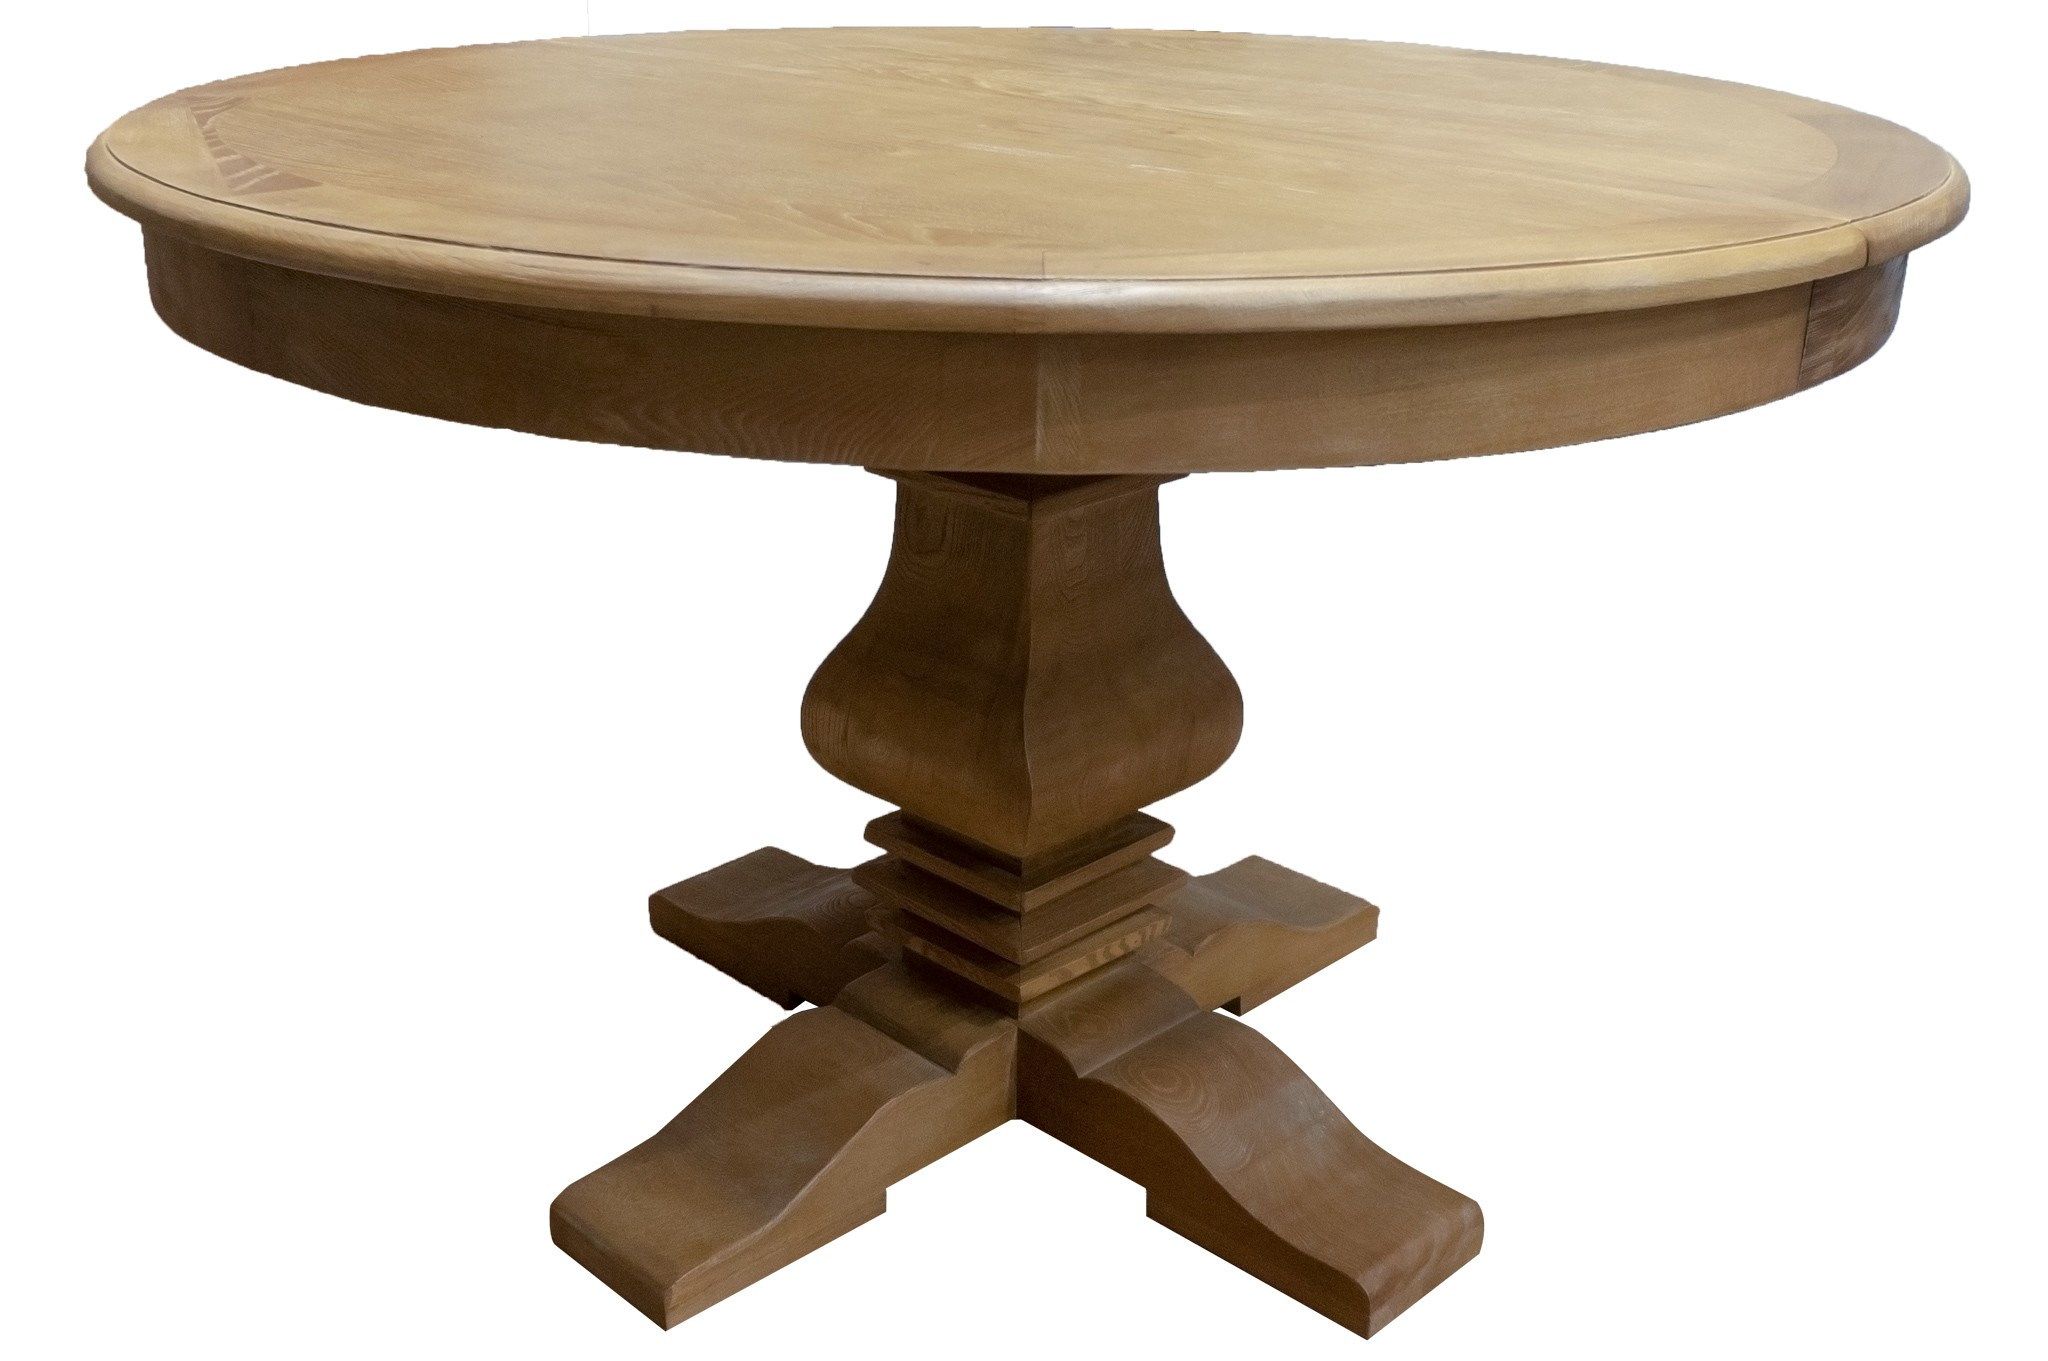 French Provincial Classic Elm Extendable Round Pedestal Dining Table Wholesales Direct